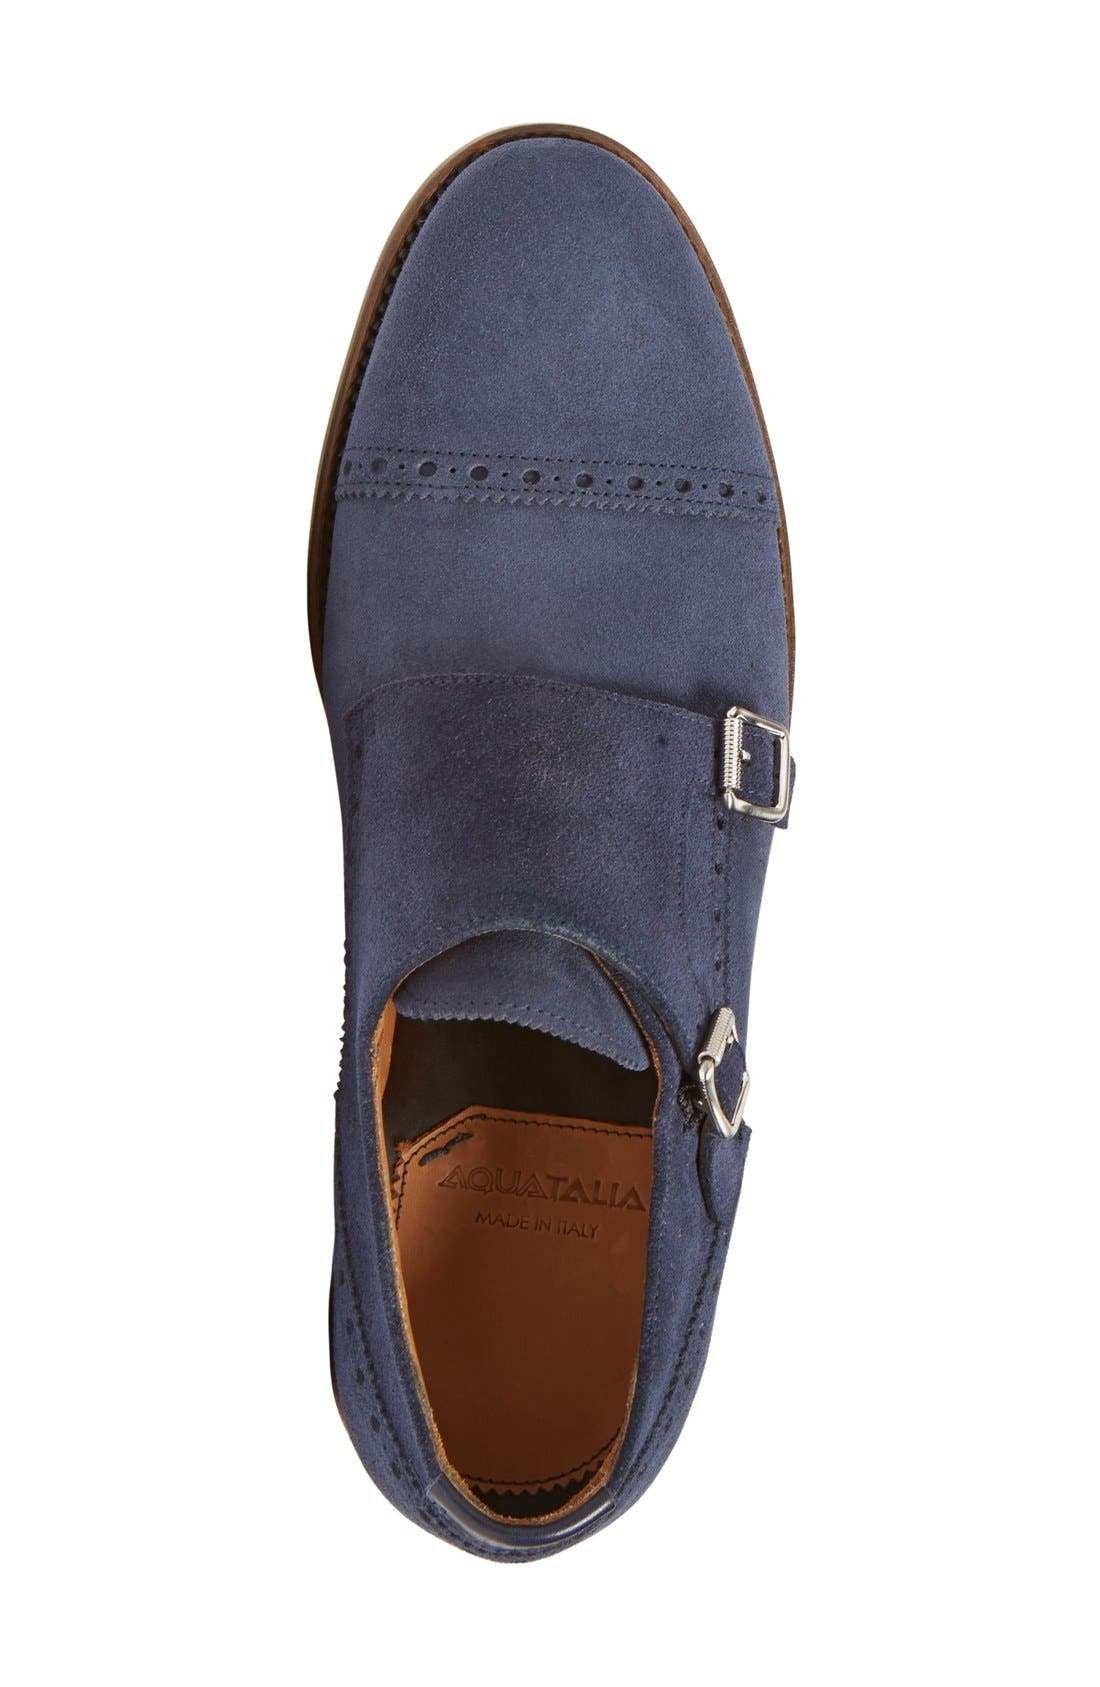 'Fallon' Weatherproof Monk Strap Shoe,                             Alternate thumbnail 3, color,                             Navy Suede